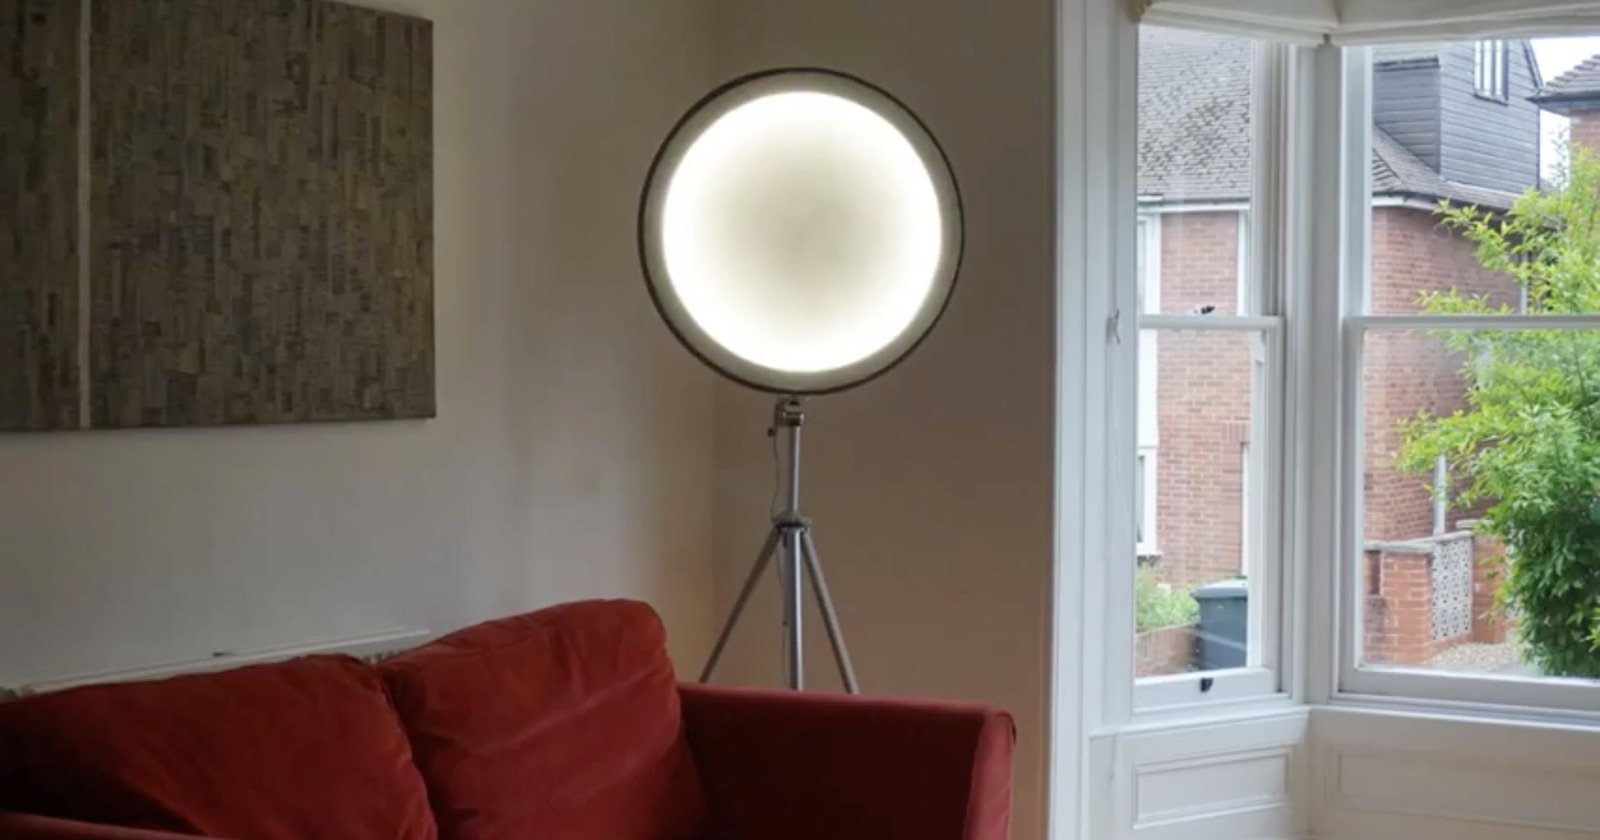 How to Make a DIY Softbox from a Bicycle Wheel and Some Fabric